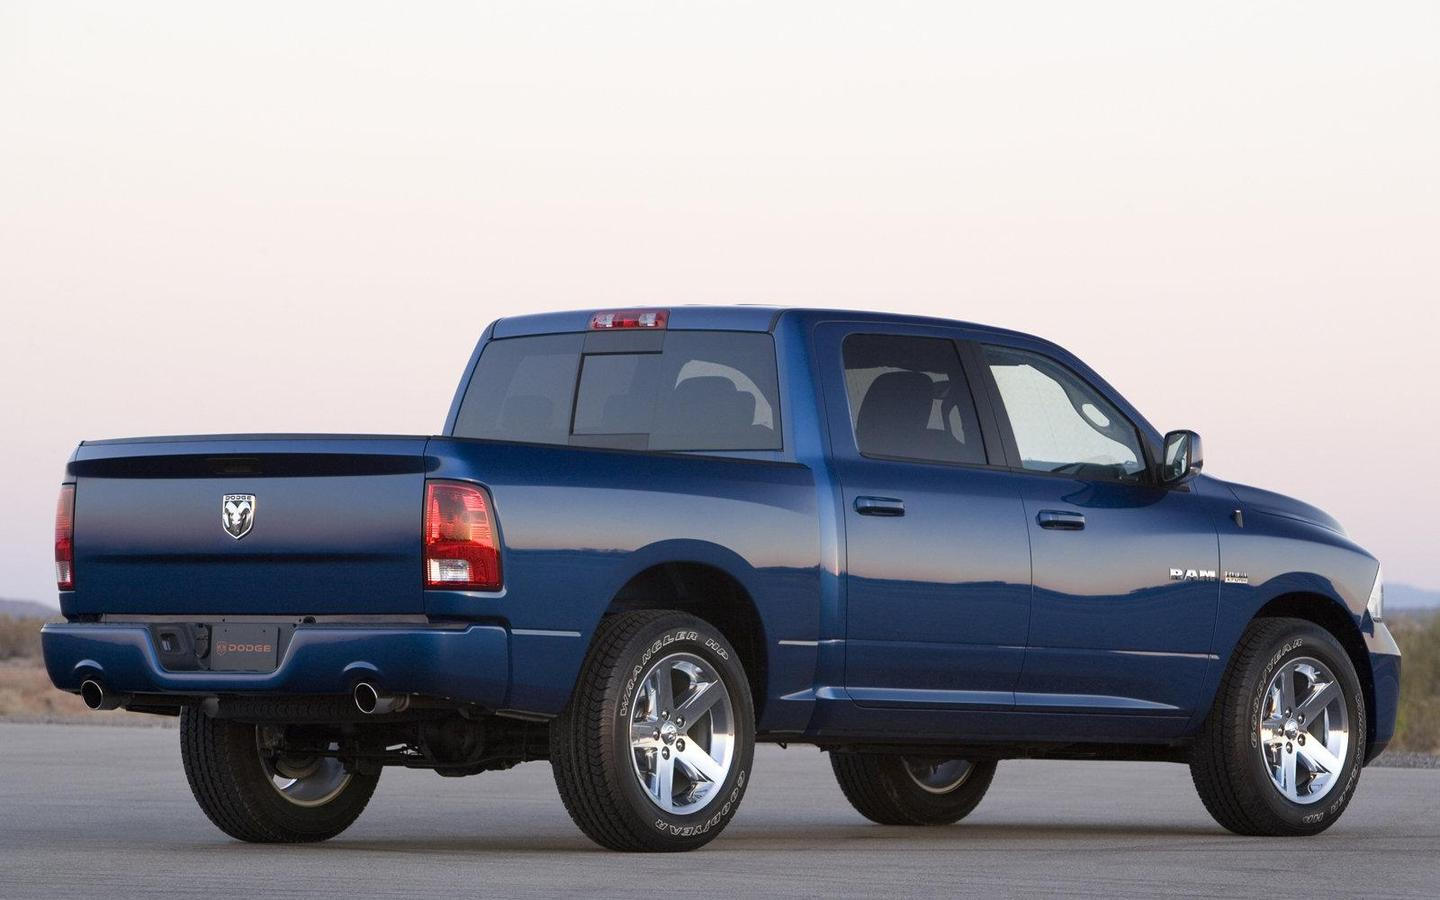 Dodge Ram 1500 Sport 2009 1600×1200 Wallpaper 09